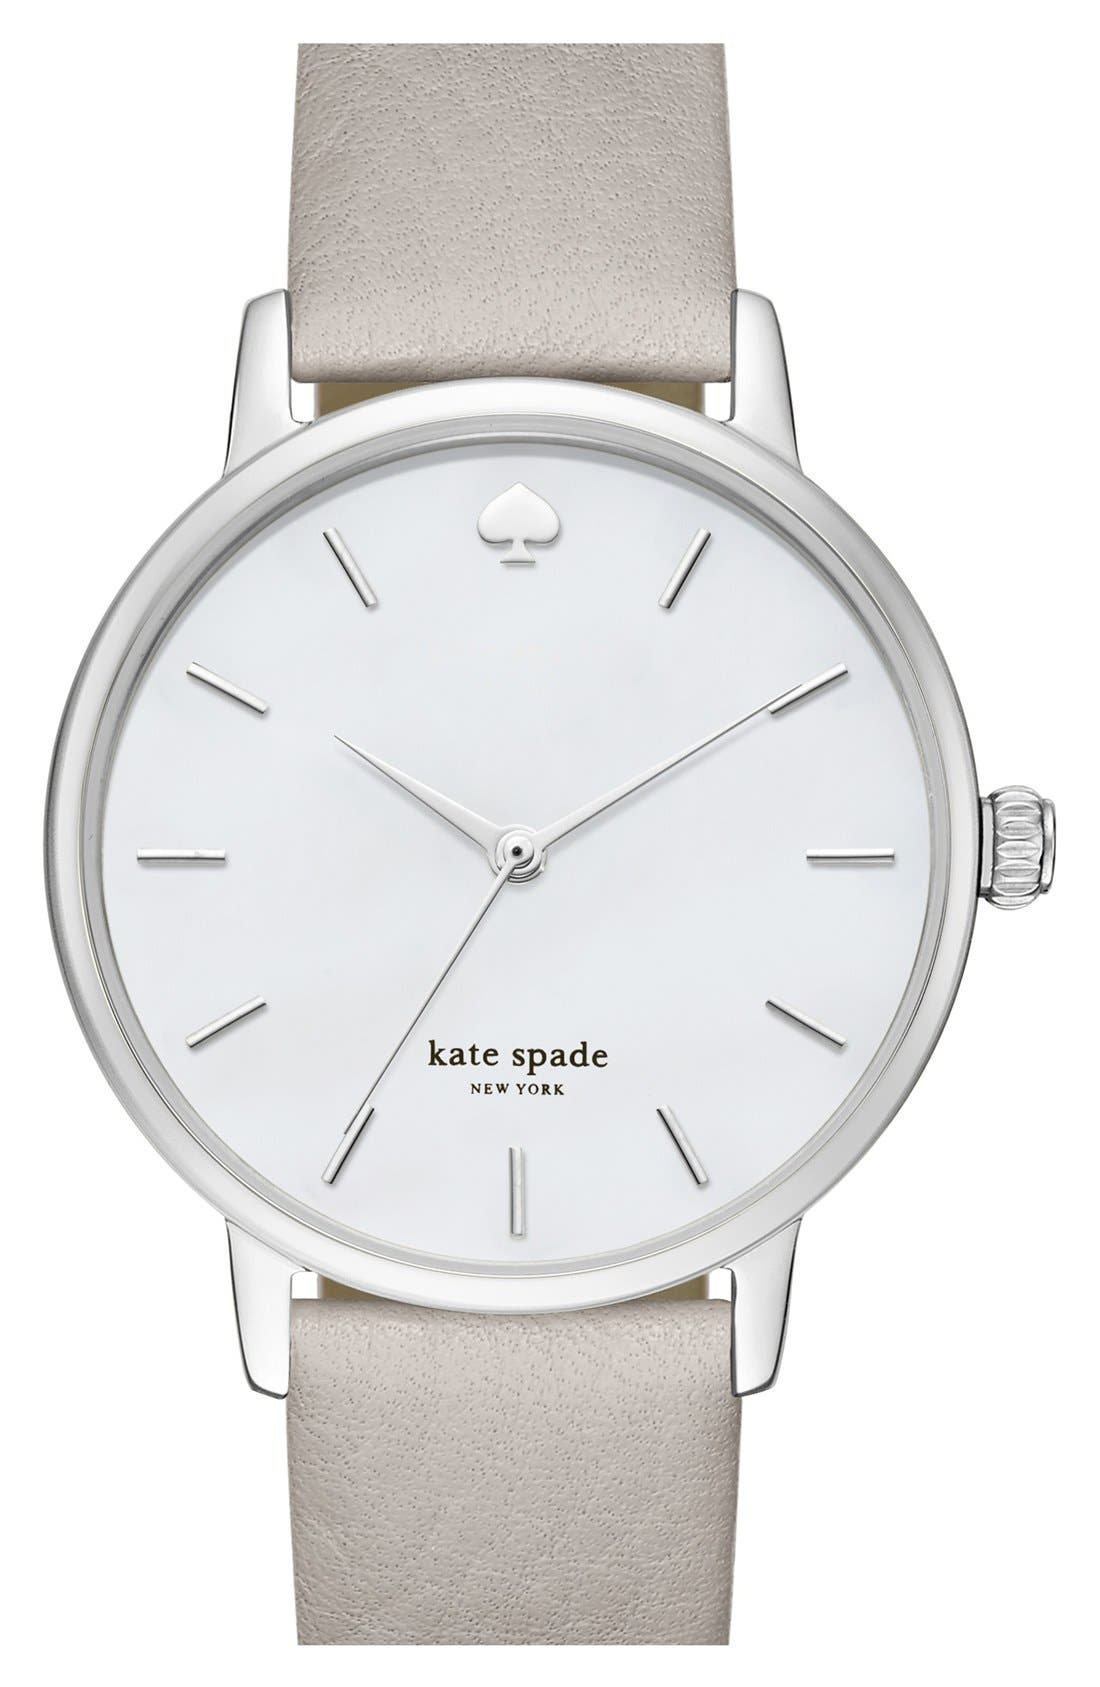 KATE SPADE NEW YORK, 'metro' round leather strap watch, 34mm, Main thumbnail 1, color, GREY/ MOTHER OF PEARL